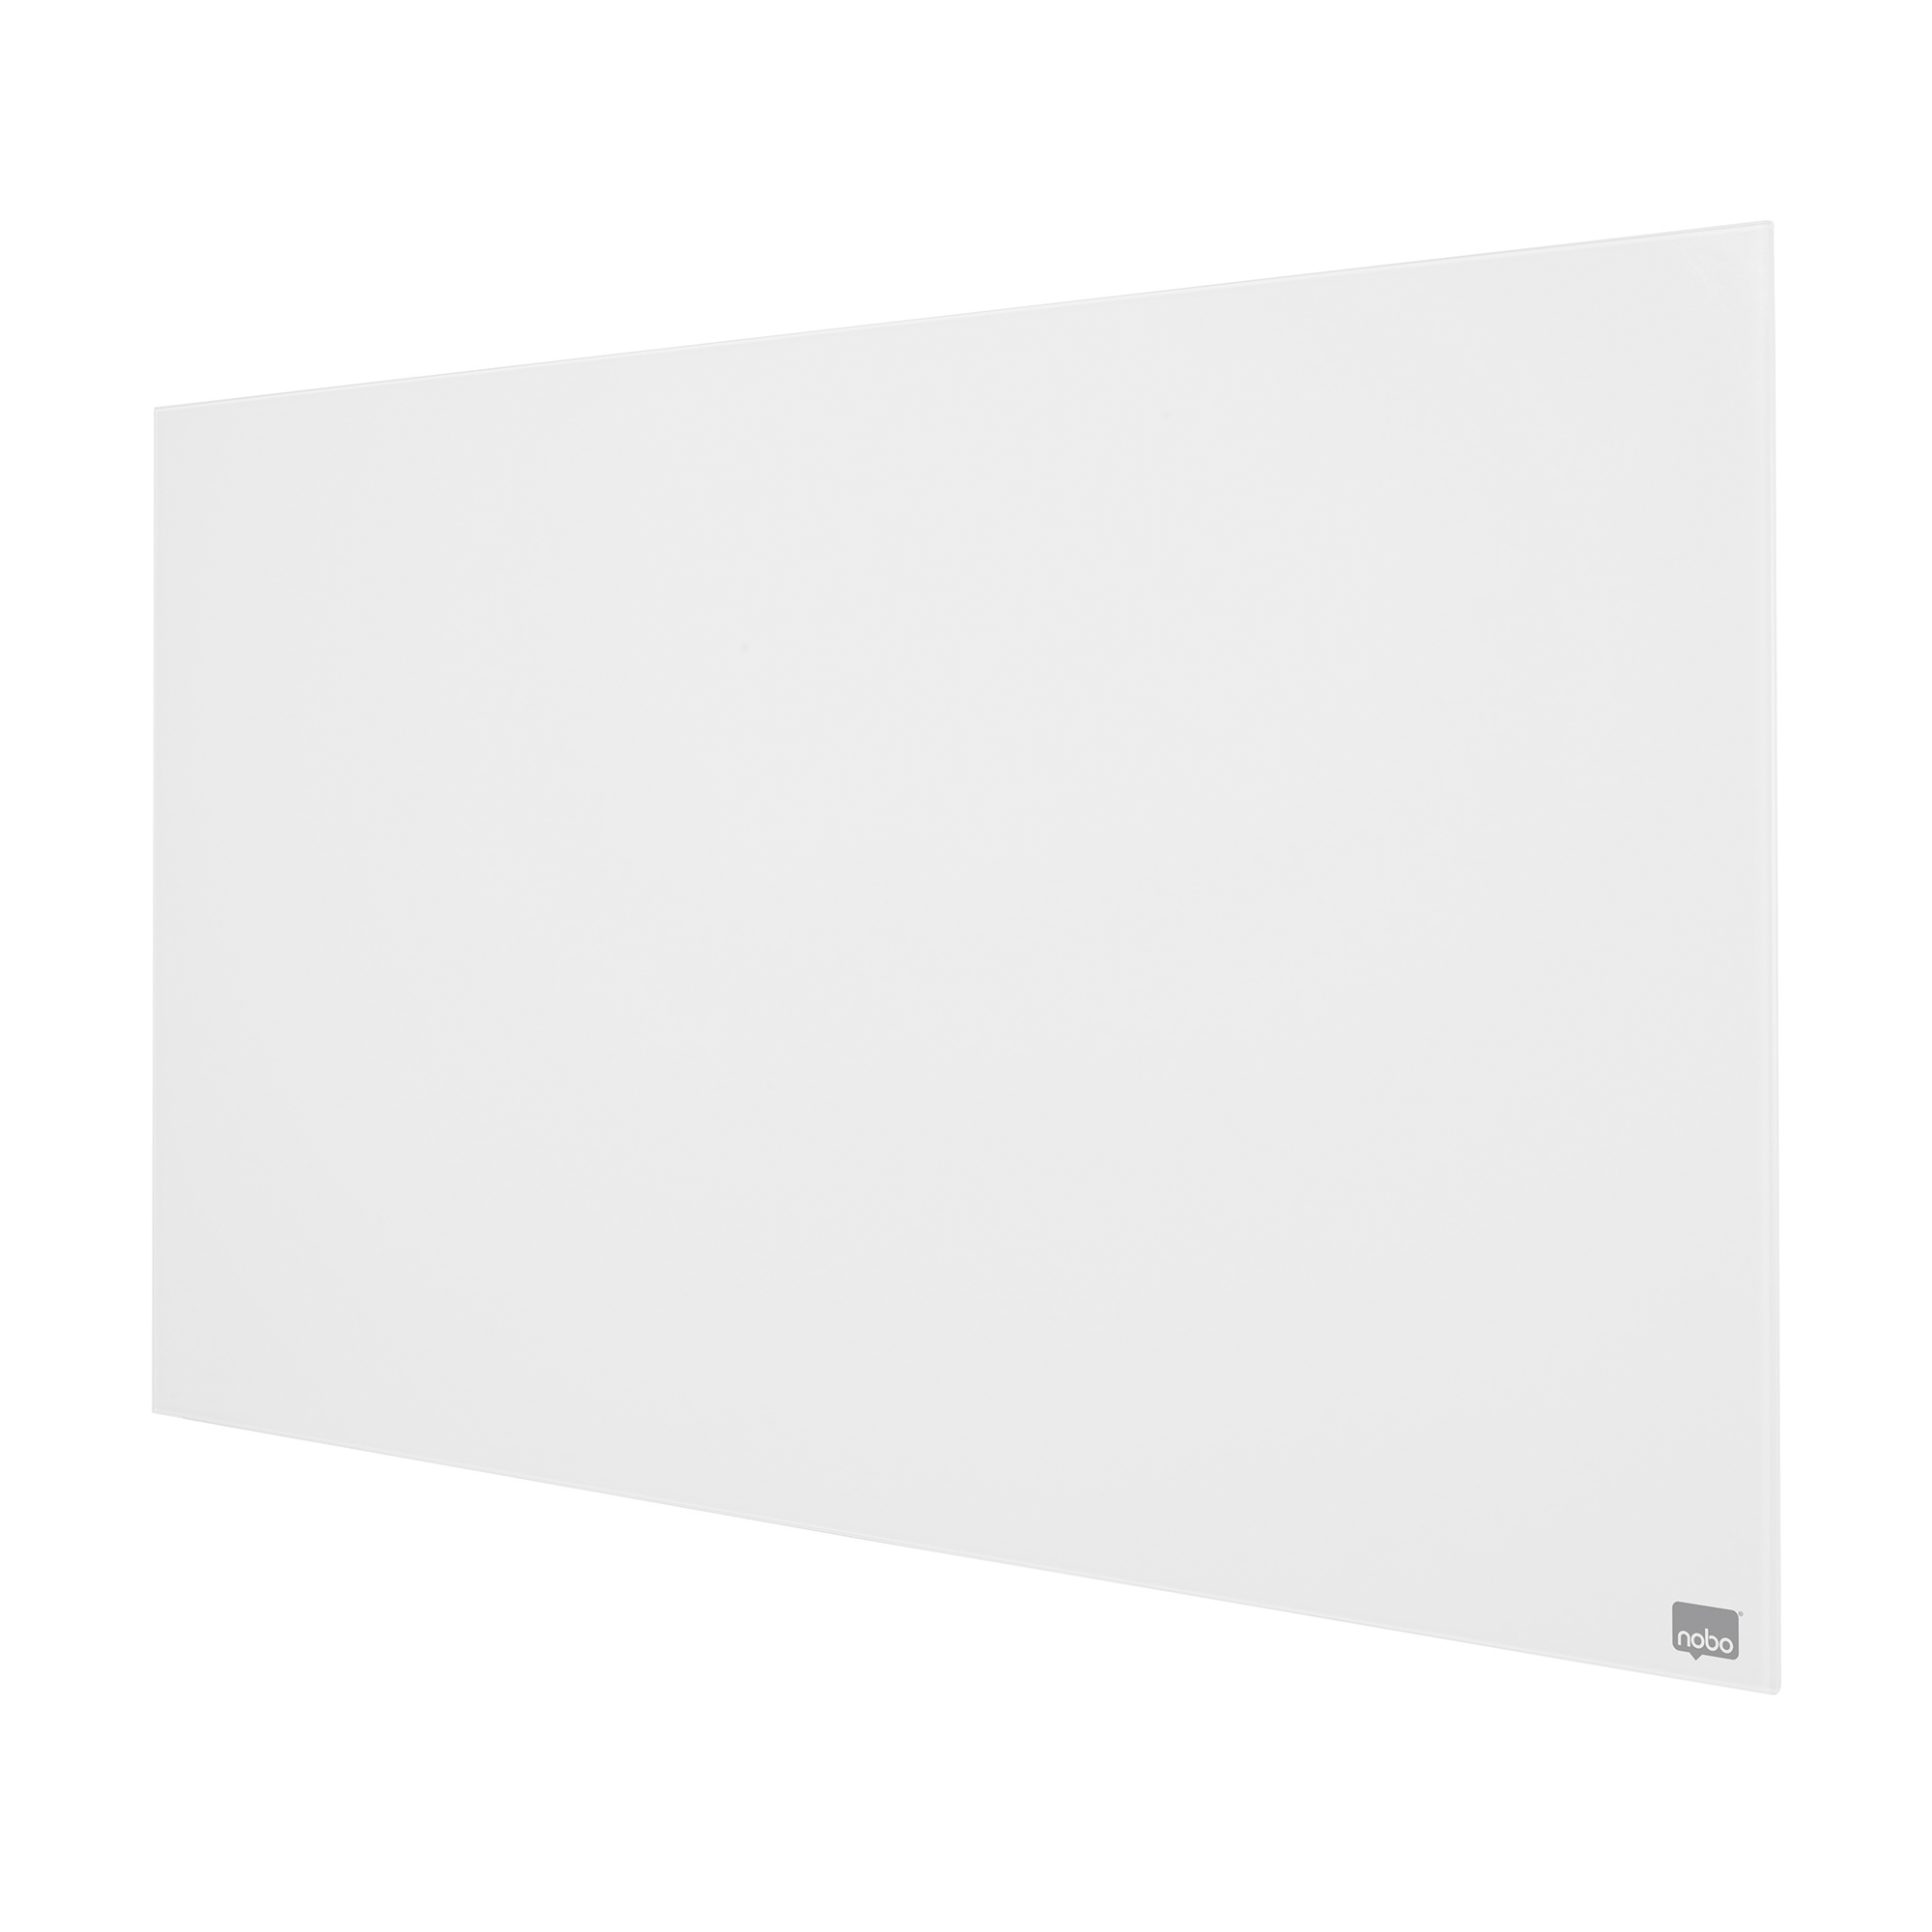 Nobo Widescreen 85 inch WBrd Glass Magnetic Scratch-Resistant Fixings Inc W1883xH1059mm Wht Ref 1905178